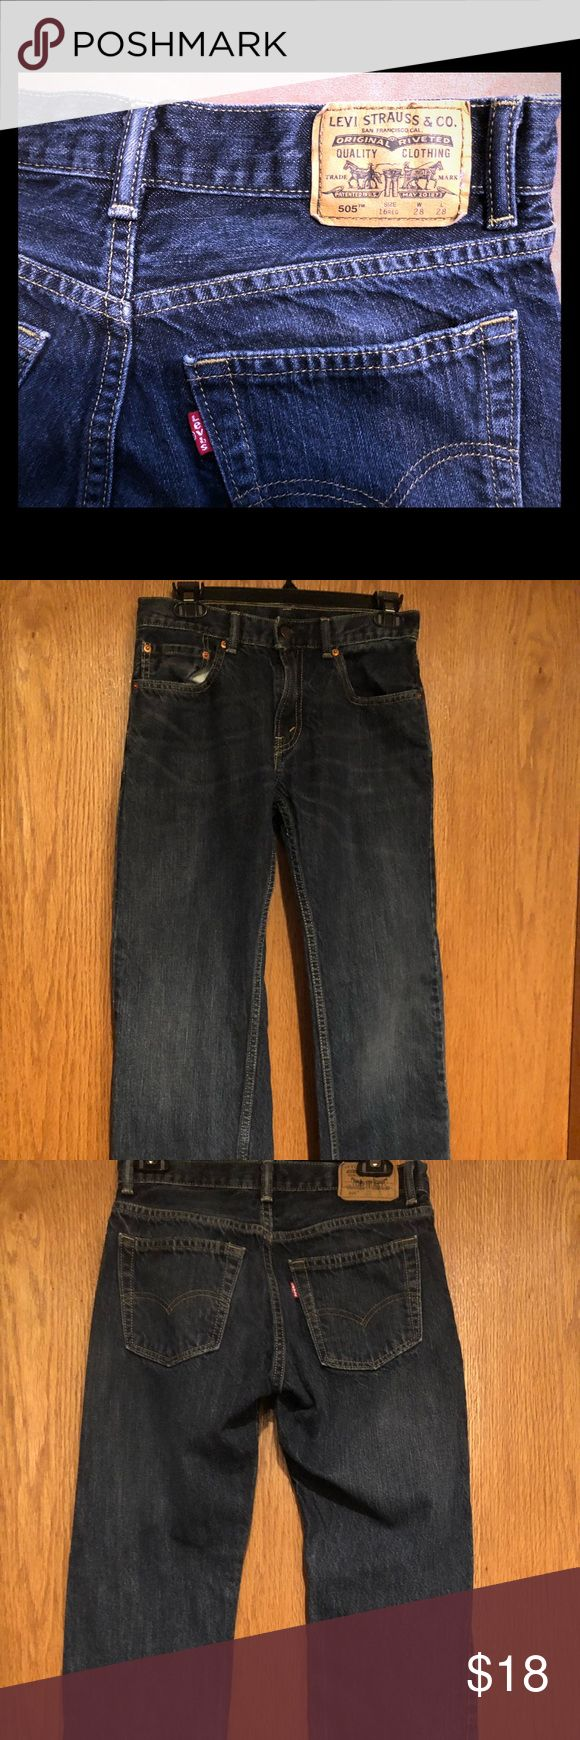 Levis 505 Jeans - size 28 x 28 Great condition Levi's 505 jeans in a young men's 28 x 28 Levi's Jeans Straight